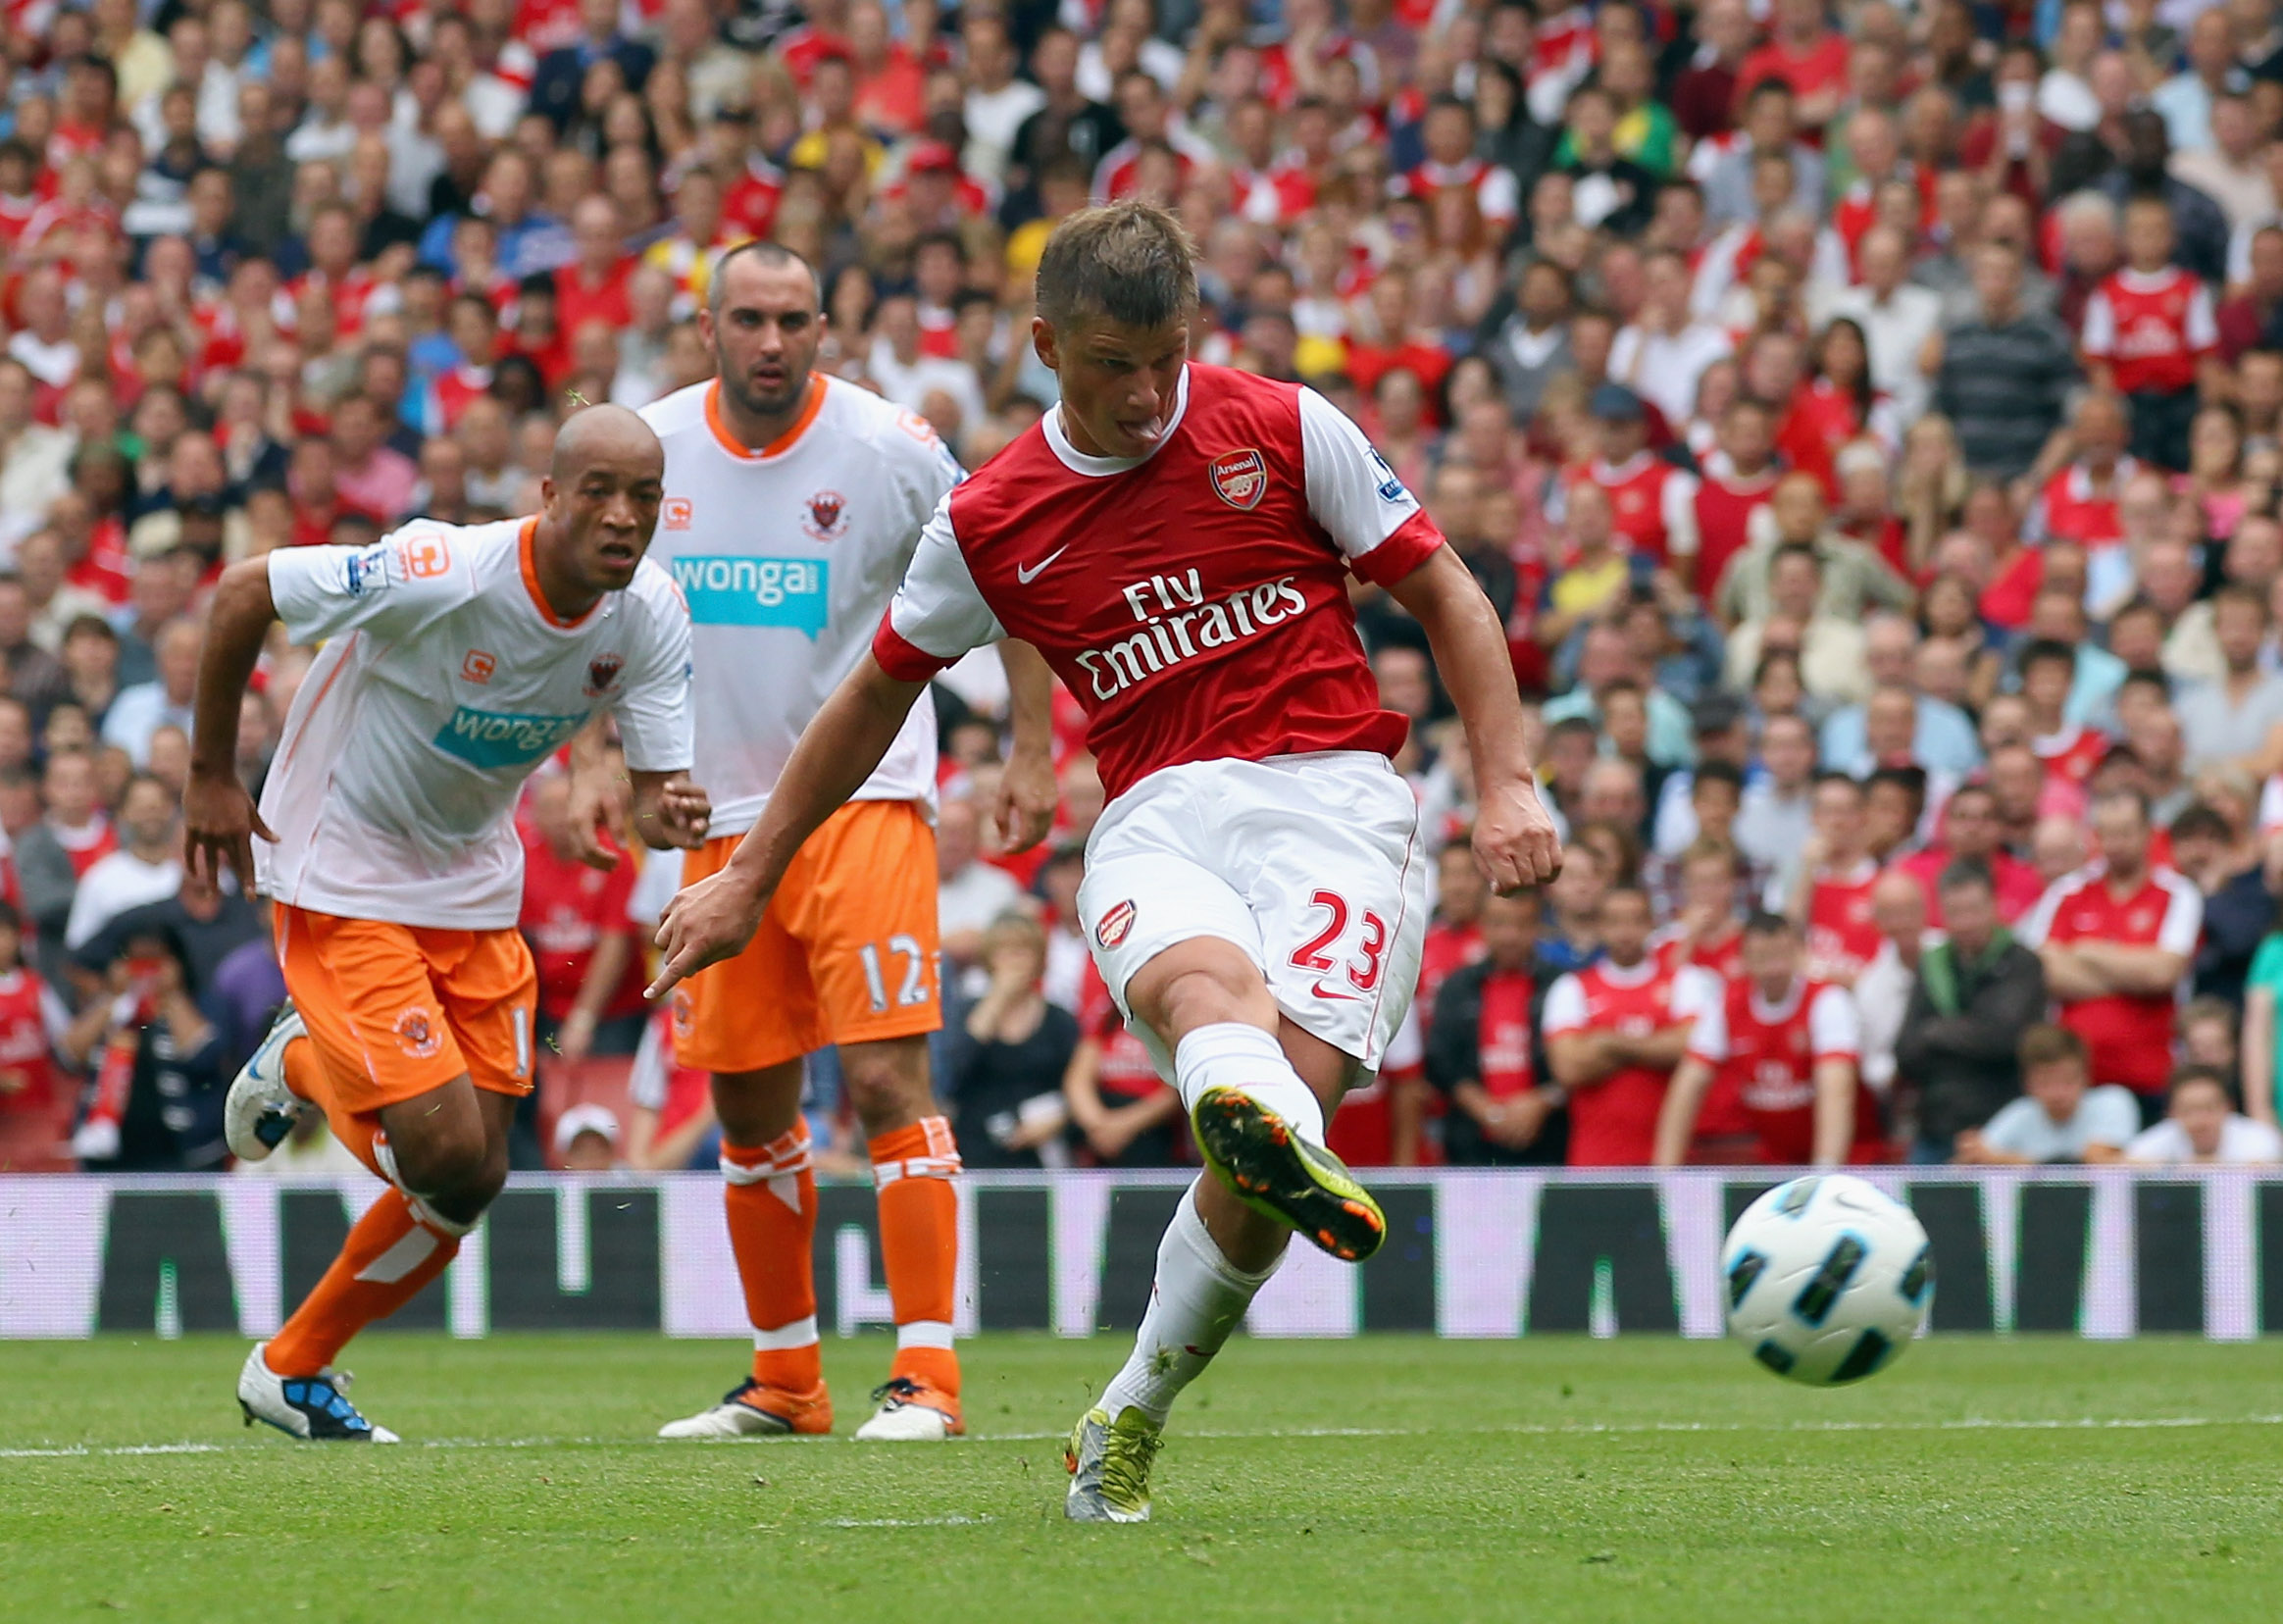 LONDON, ENGLAND - AUGUST 21: Andrey Arshavin of Arsenal scores a penalty during the Barclays Premier League match between Arsenal and Blackpool at The Emirates Stadium on August 21, 2010 in London, England.  (Photo by Clive Rose/Getty Images)